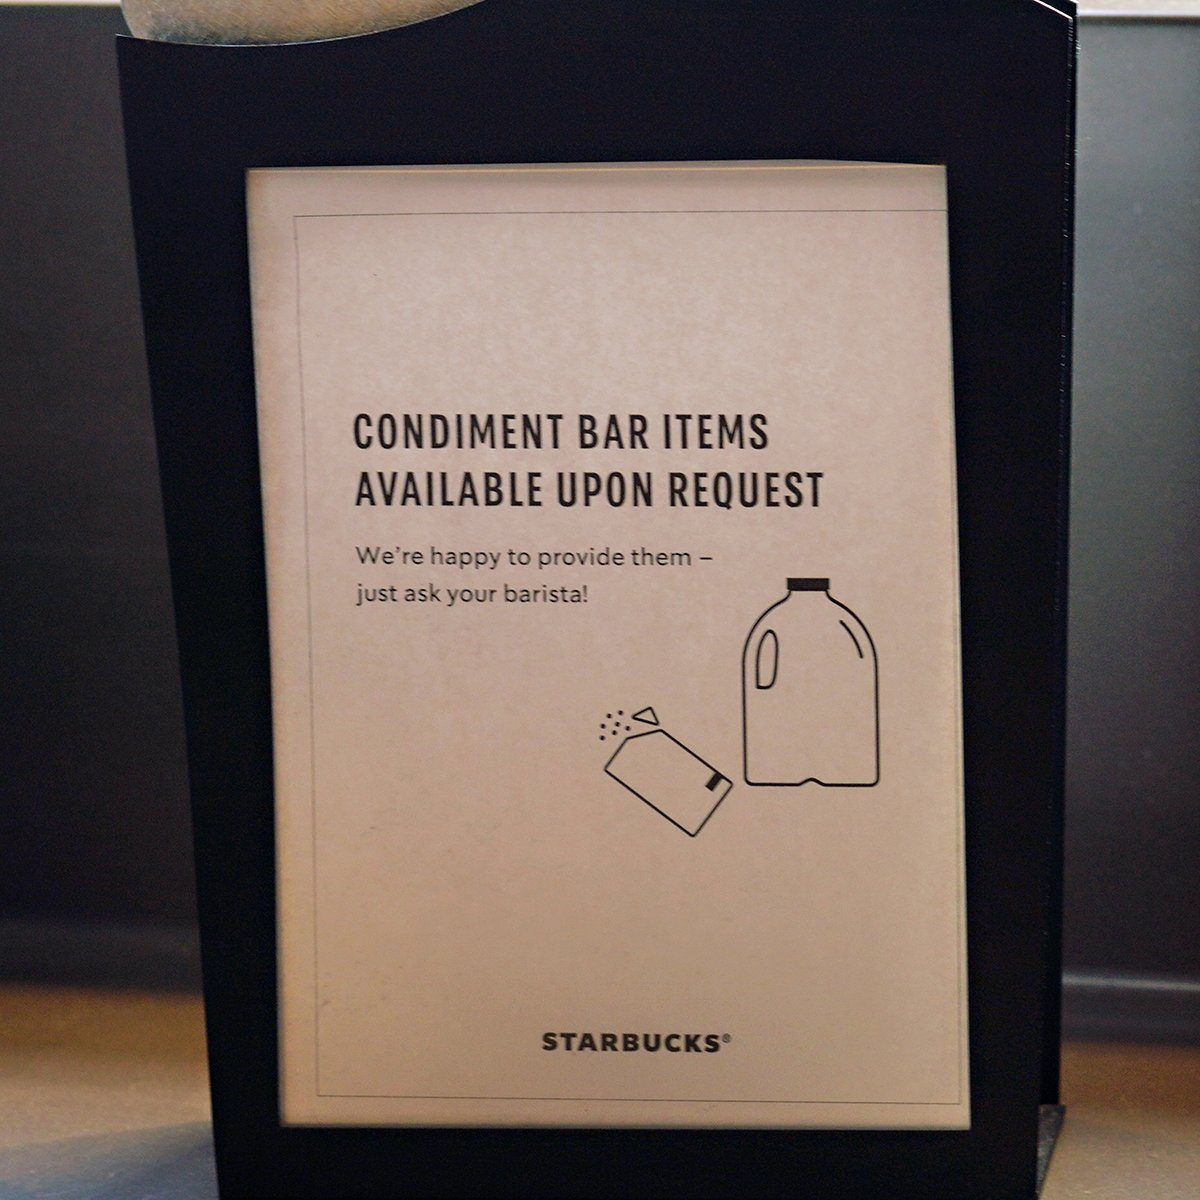 NEW YORK, NY - MARCH 14: A sign is on display at Starbucks offering condiment bar items on request rather then self serve as the coronavirus continues to spread across the United States on March 14, 2020 in New York City. The World Health Organization declared coronavirus (COVID-19) a global pandemic on March 11th. (Photo by Cindy Ord/Getty Images)